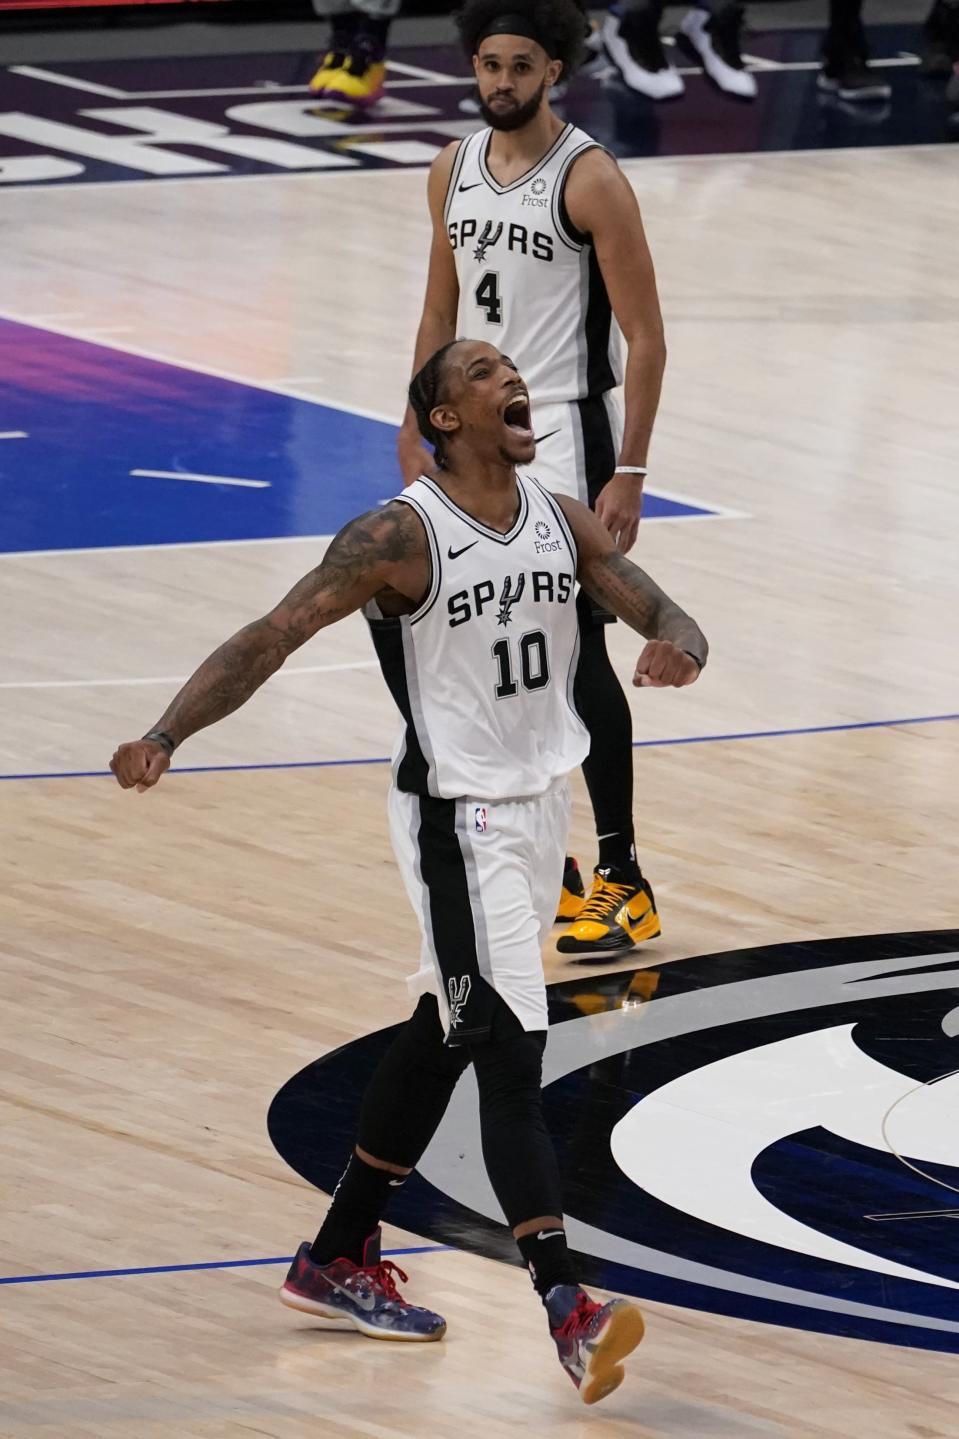 San Antonio Spurs forward DeMar DeRozan (10) celebrates after sinking a basket in the final second of the second half of an NBA basketball game against the Dallas Mavericks in Dallas, Sunday, April 11, 2021. Spurs' Derrick White (4) looks on as DeRozan celebrates. (AP Photo/Tony Gutierrez)